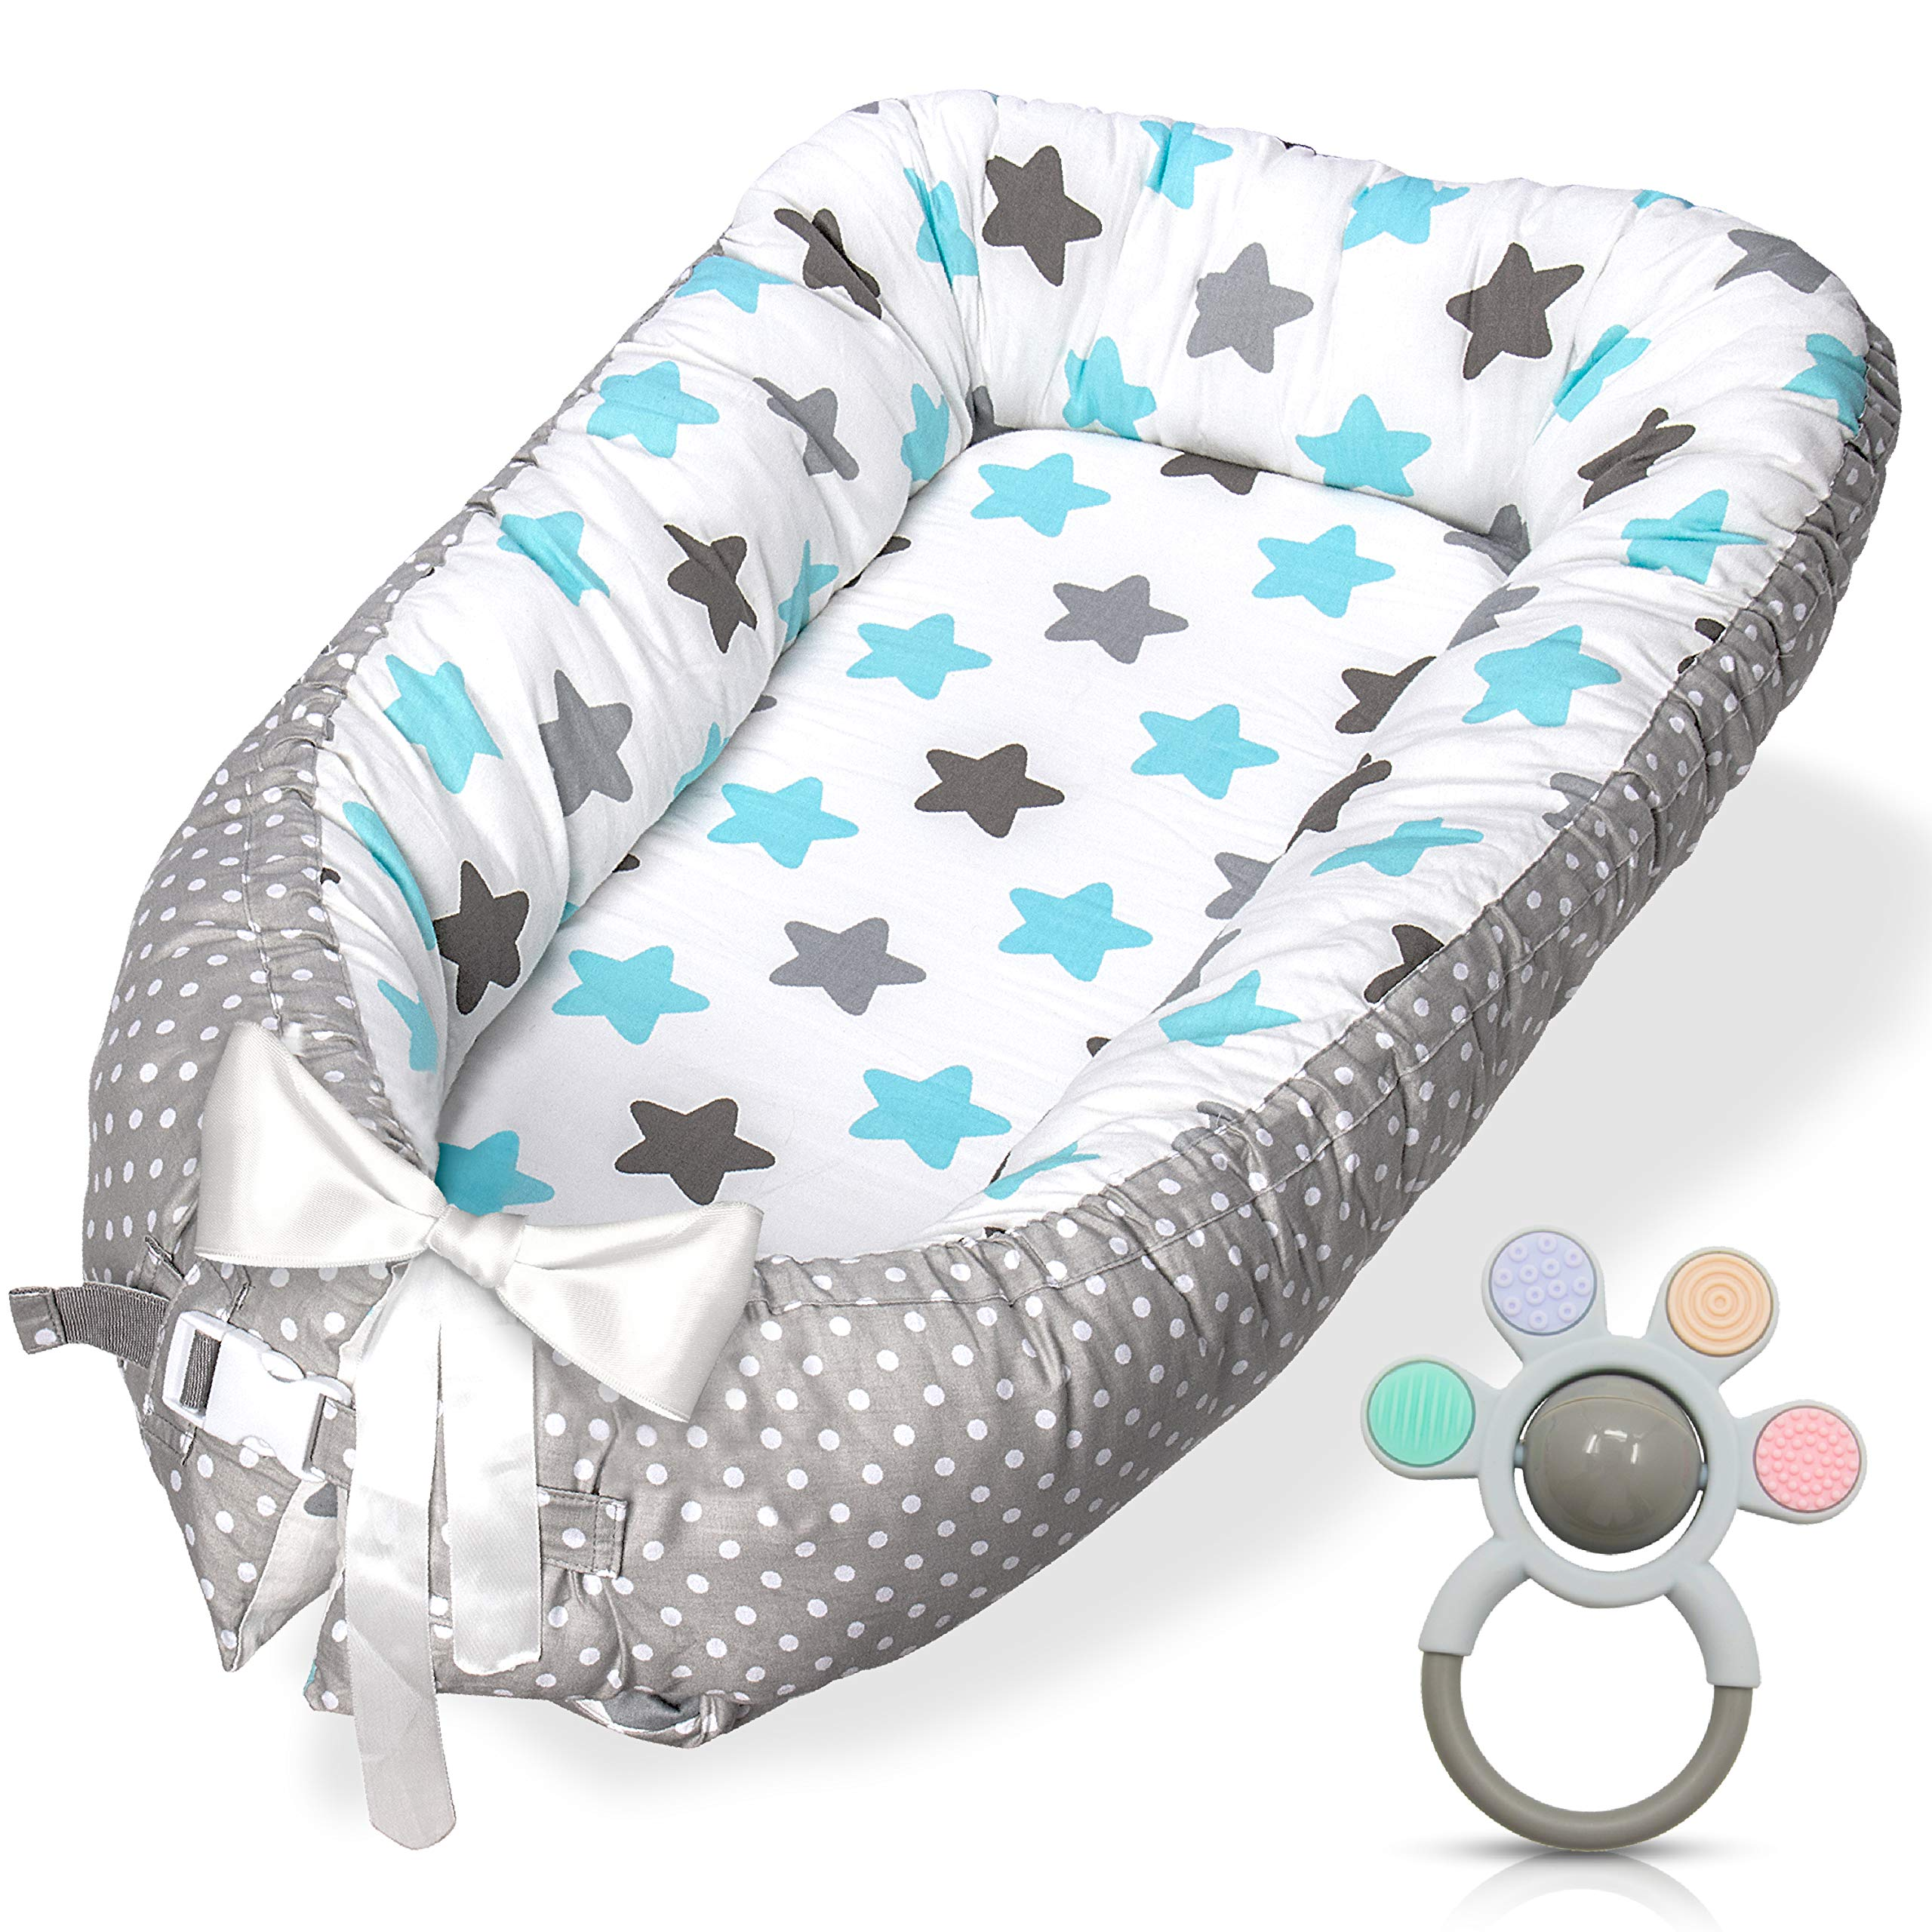 Baby Lounger Perfect for Co-Sleeping and Traveling 0-12 Months Portable 100/% Organic Soft Cotton Breathable Crib Whale Baby Nest and Baby Bassinet